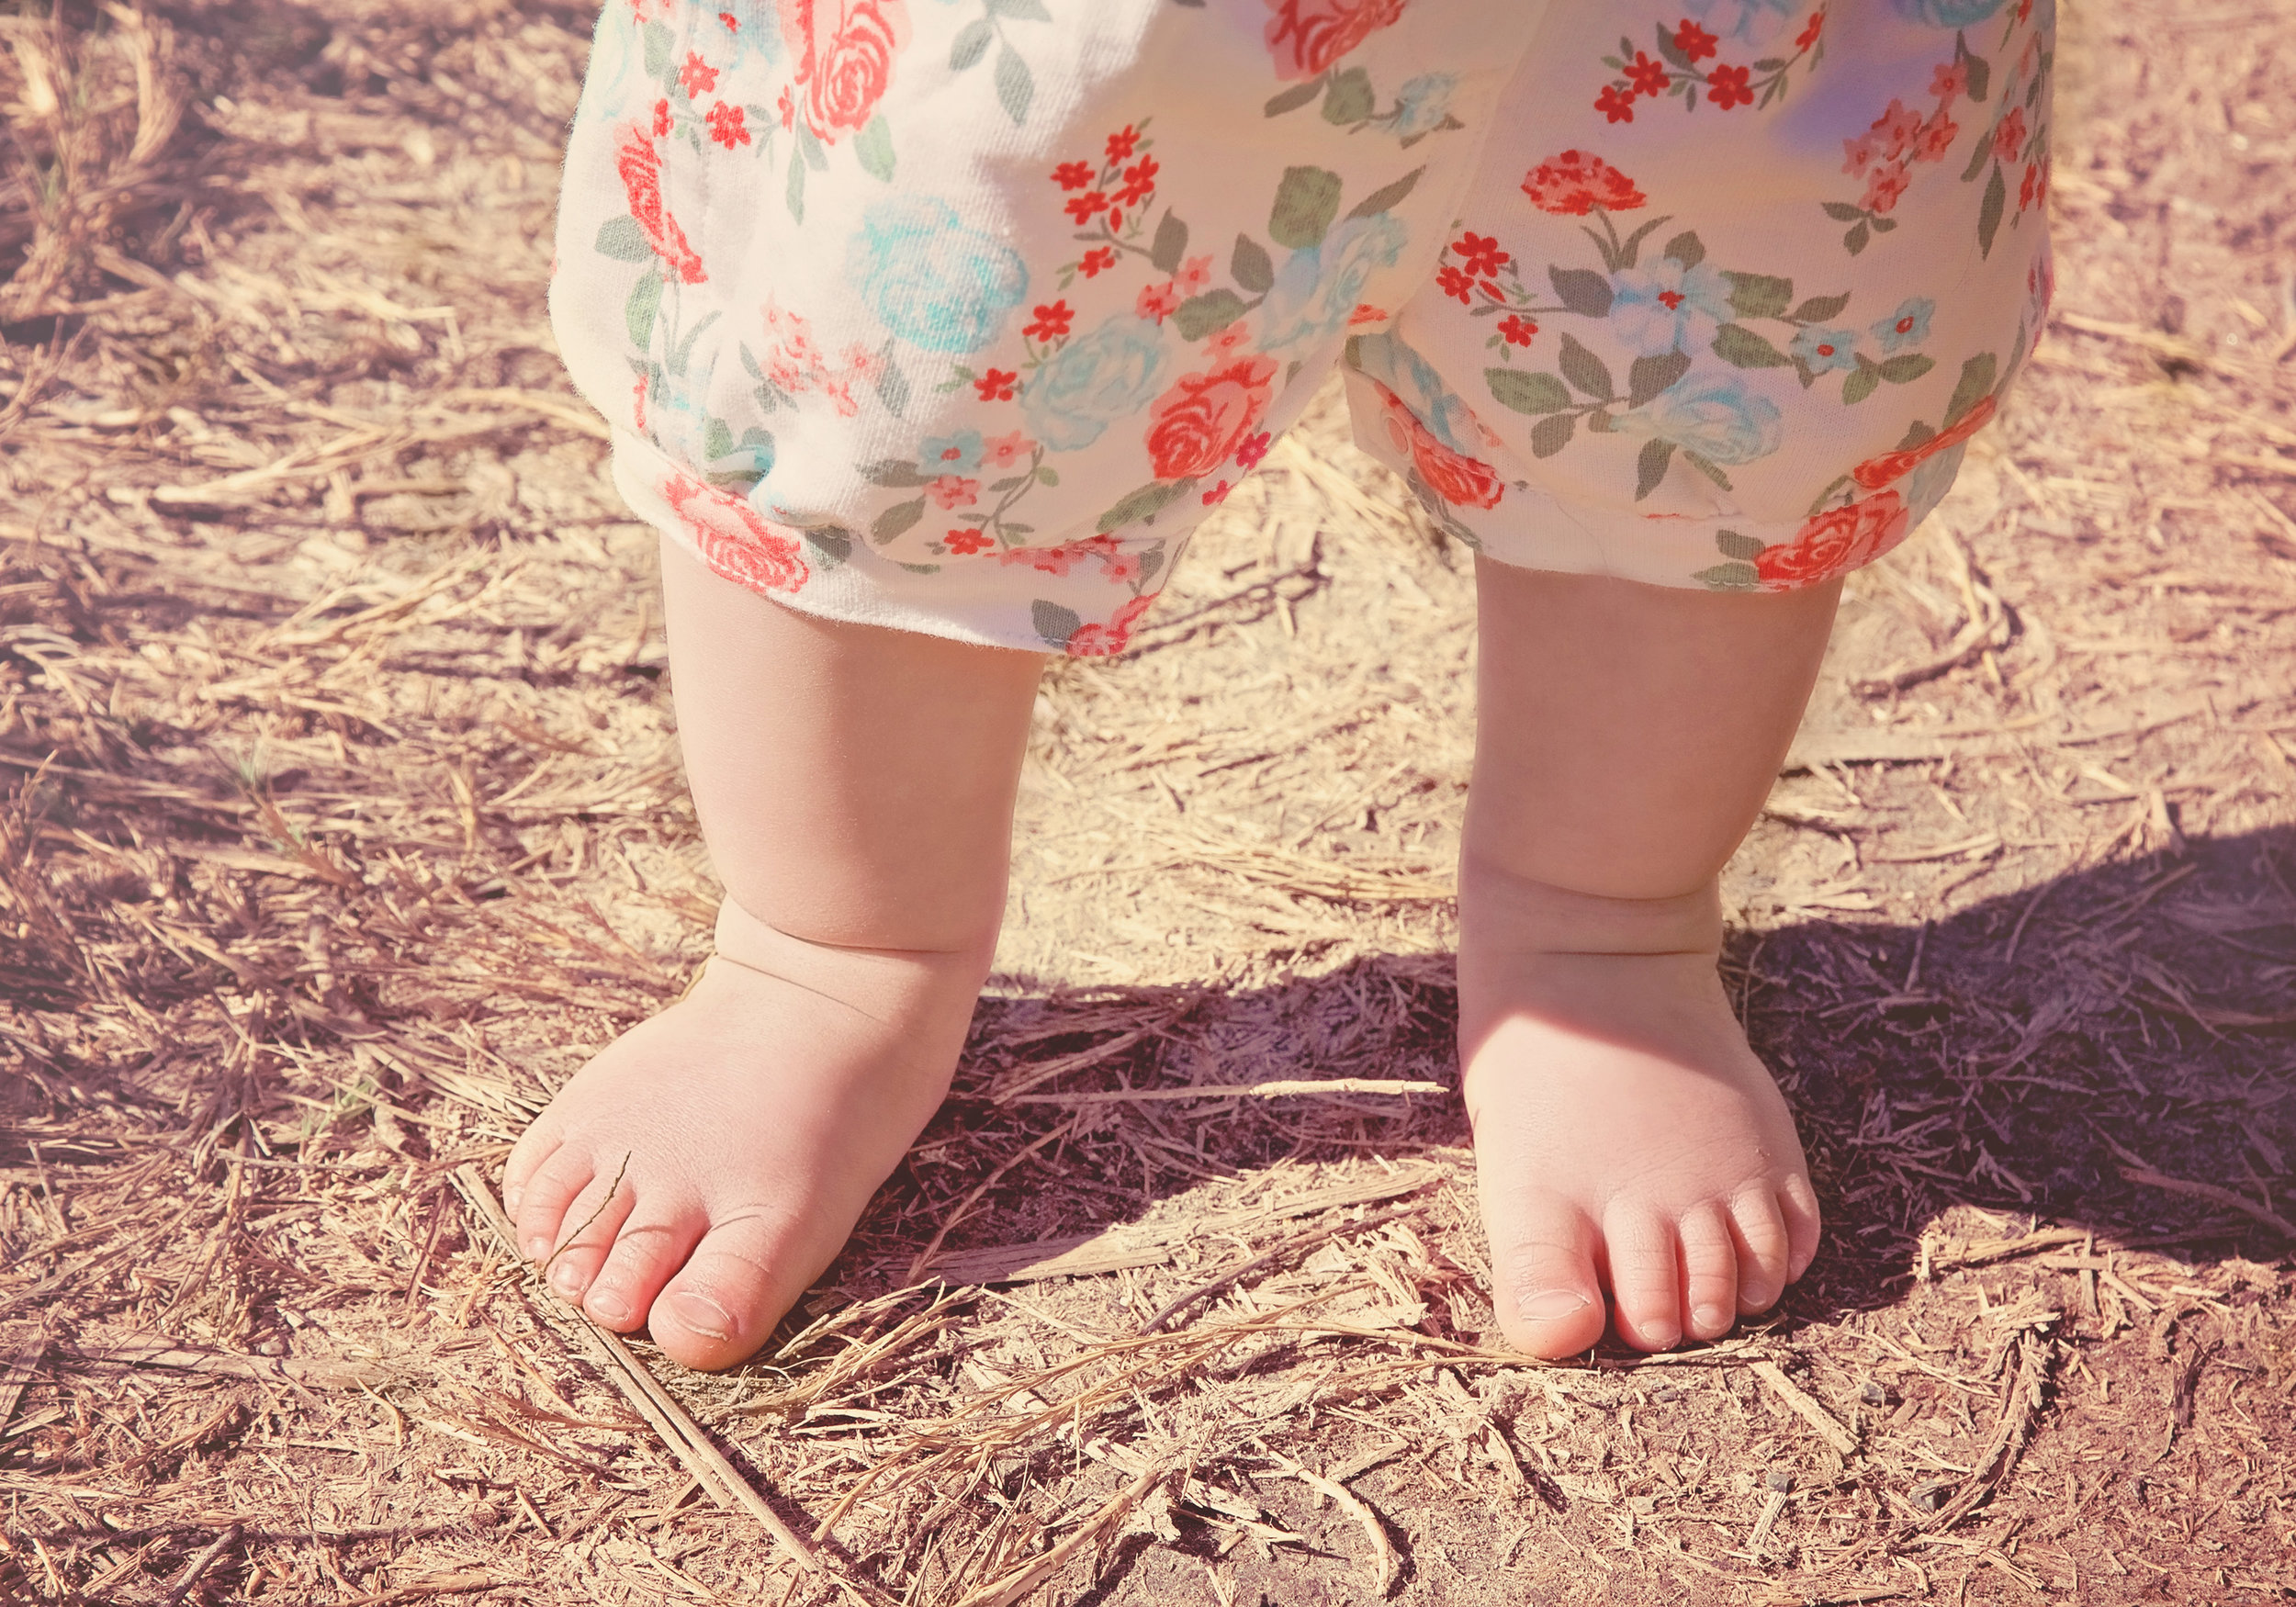 Baby Feet Portraits Photography | Lifestyle Portrait Photography | Lacey O